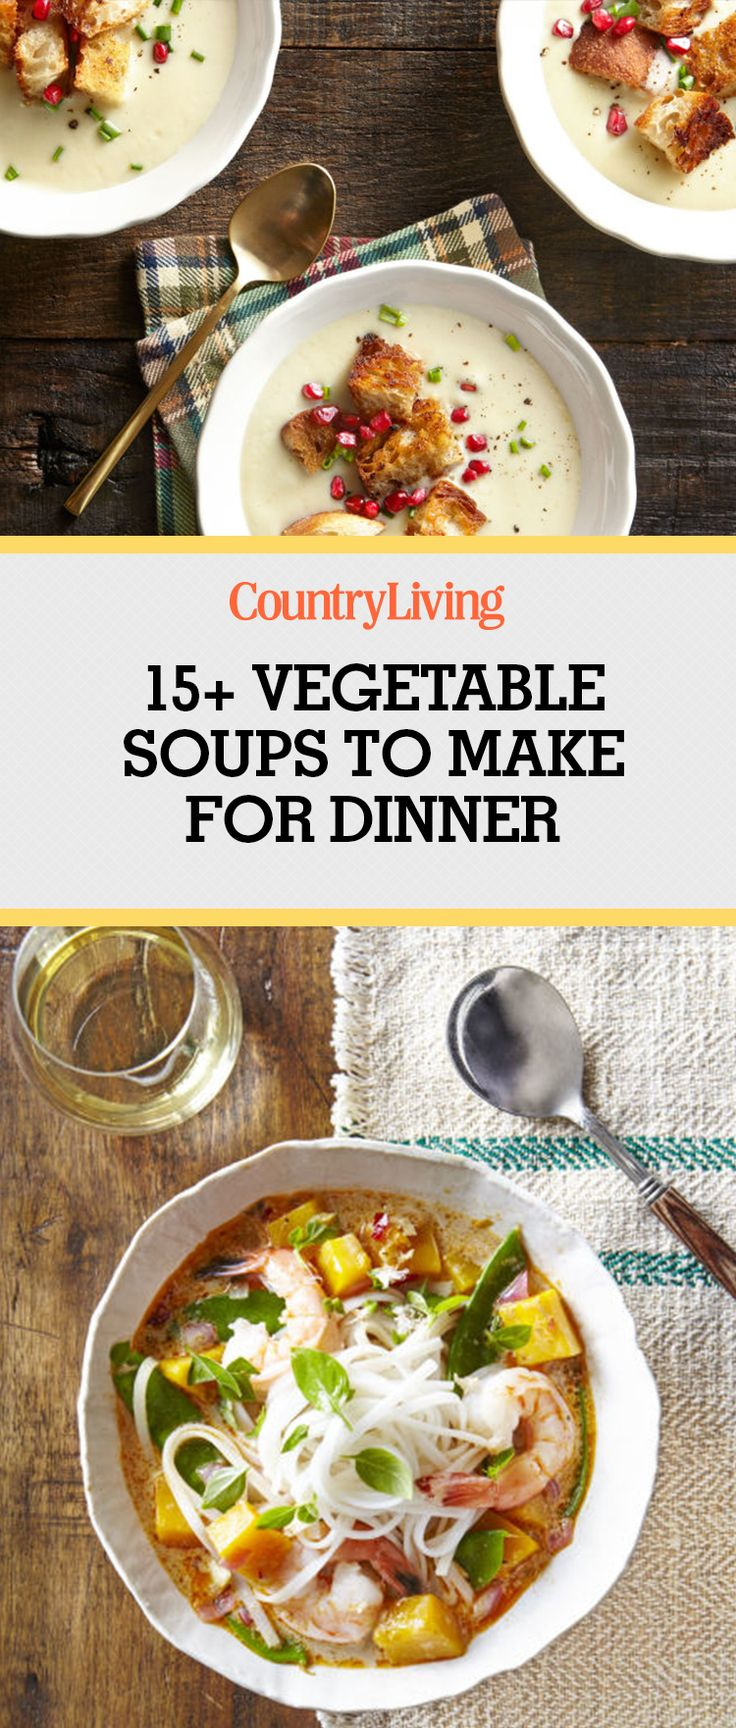 Dish up a bowl of vegetable-based soup for a meal that's both tasty and good for you. You'll want to cozy up with these vegetable soup recipes all winter long.